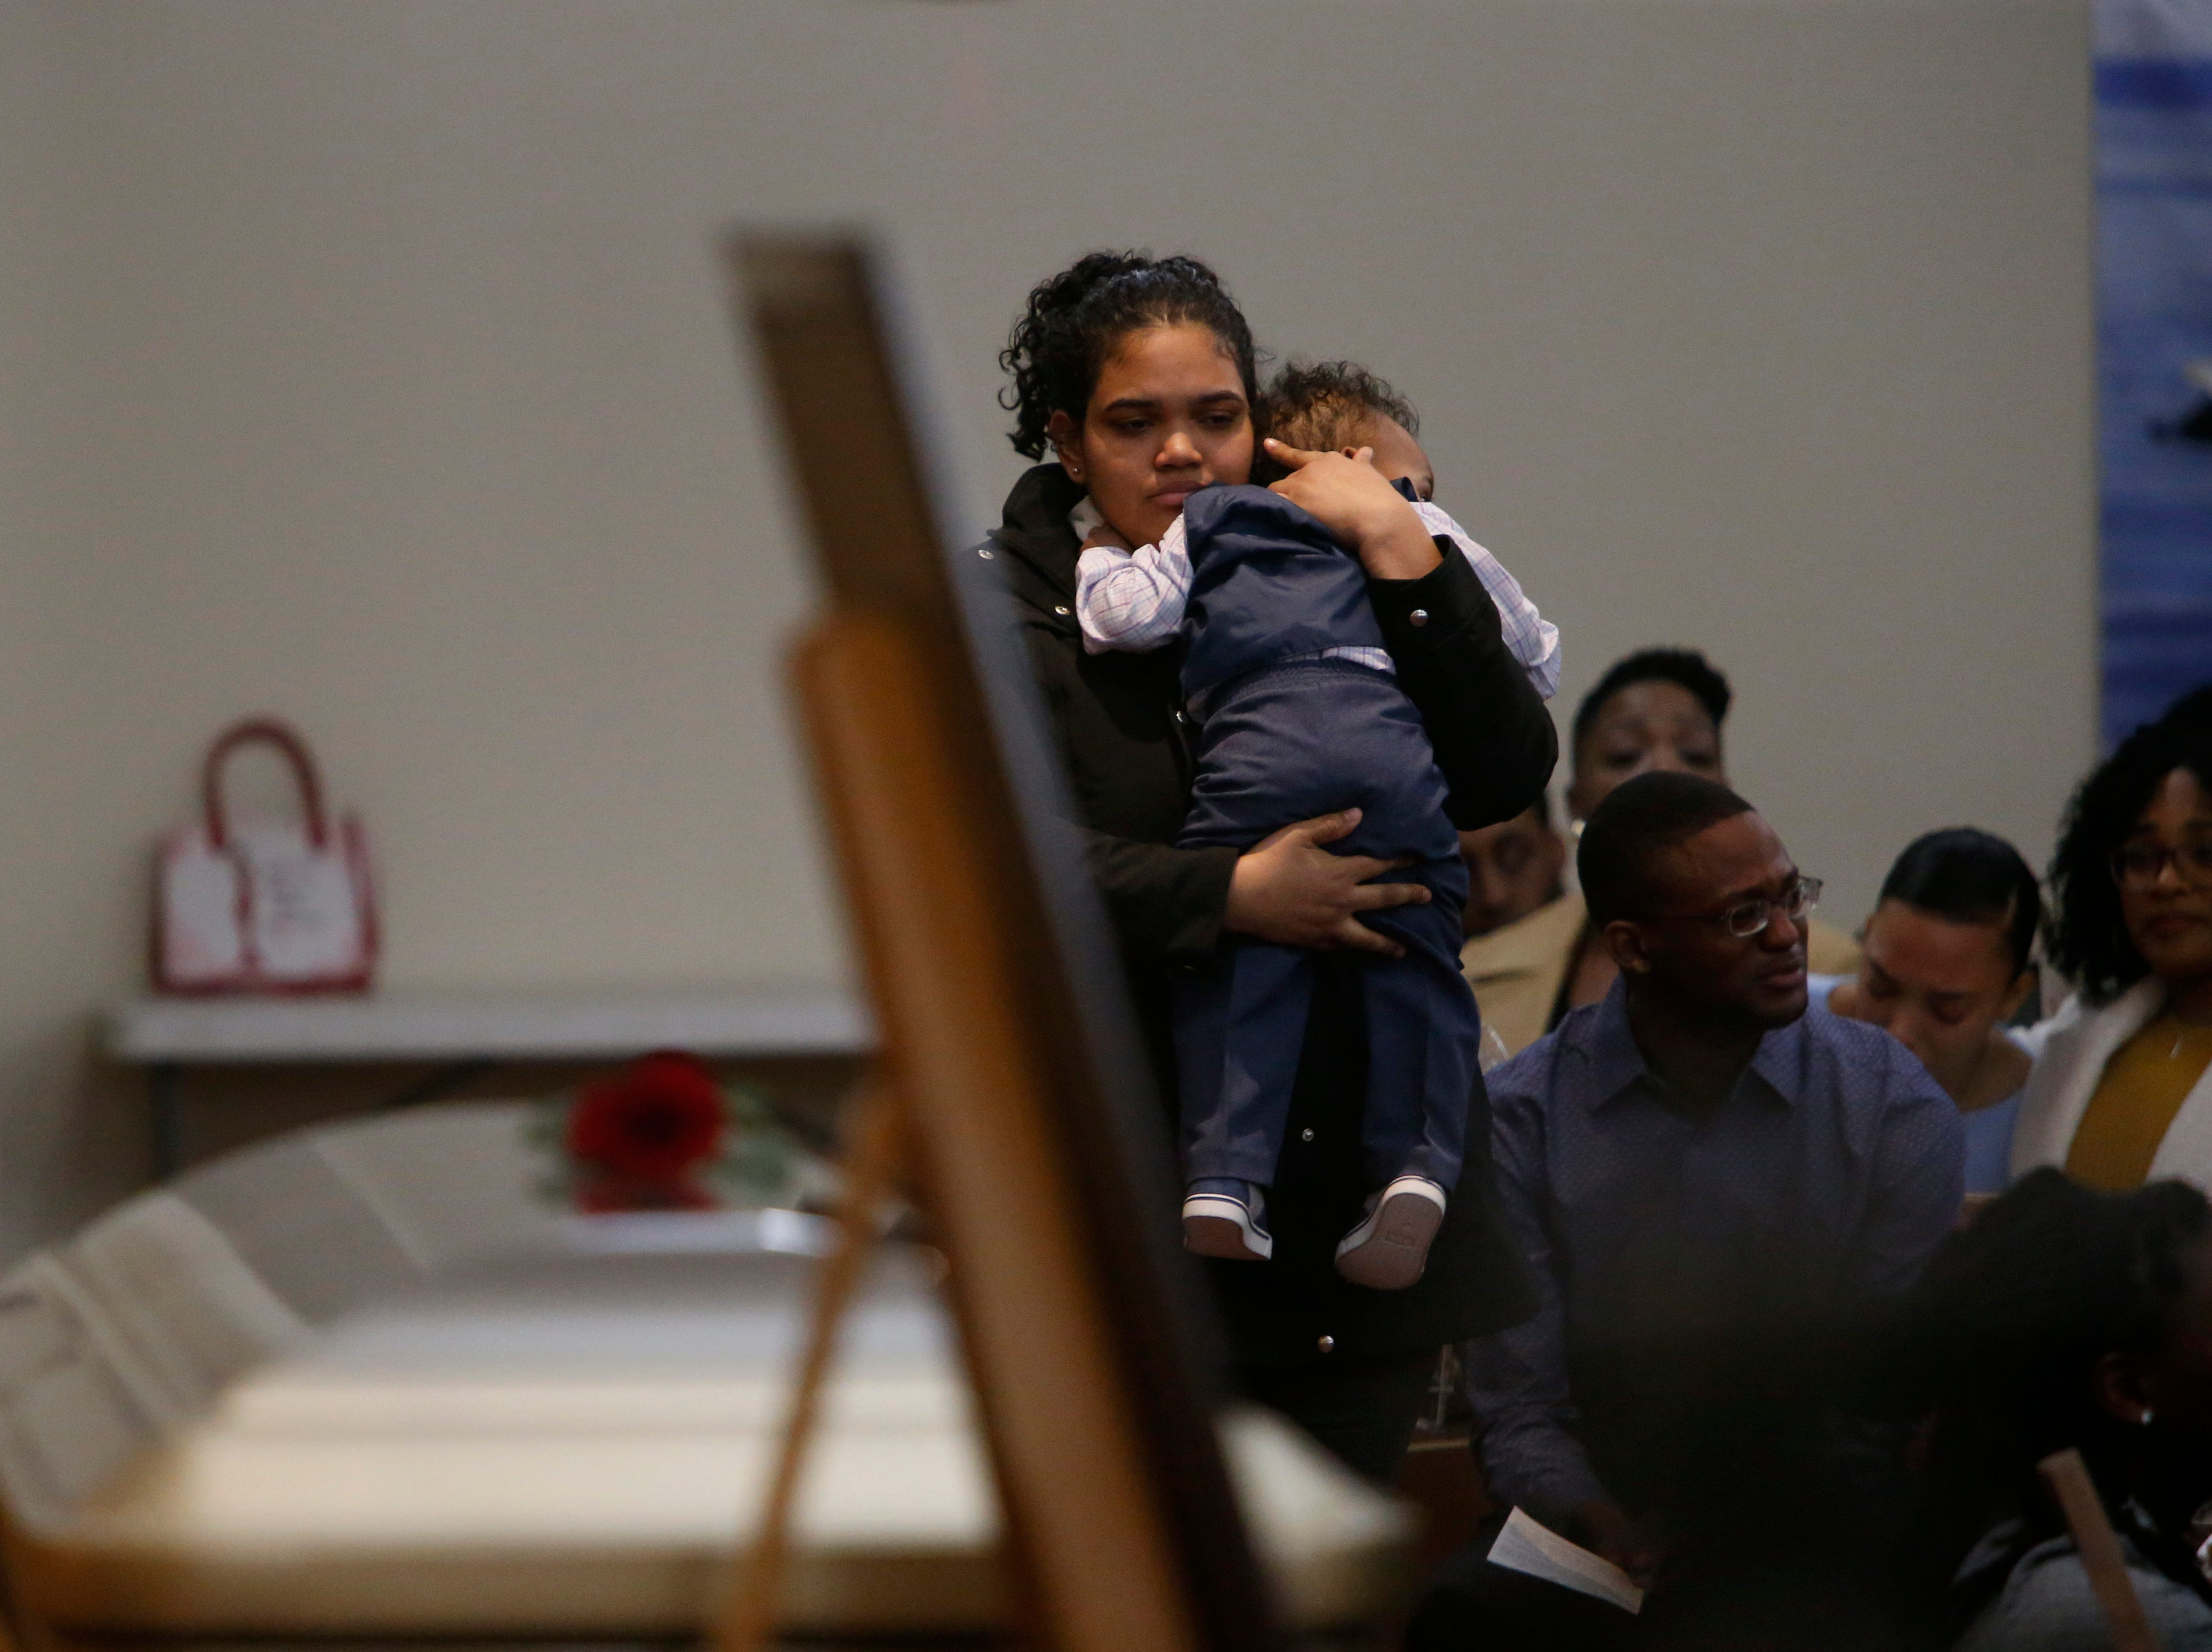 Jaquan Cesar's girlfriend, Edwina Cepeda Aracena holds their son, Yasir Cesar during the funeral service for Jaquan at Beulah Baptist Church in the City of Poughkeepsie on February 22, 2019. Jaquan died on Feb 11th while attempting to help a stranded motorist on the Cross Bronx Expressway.